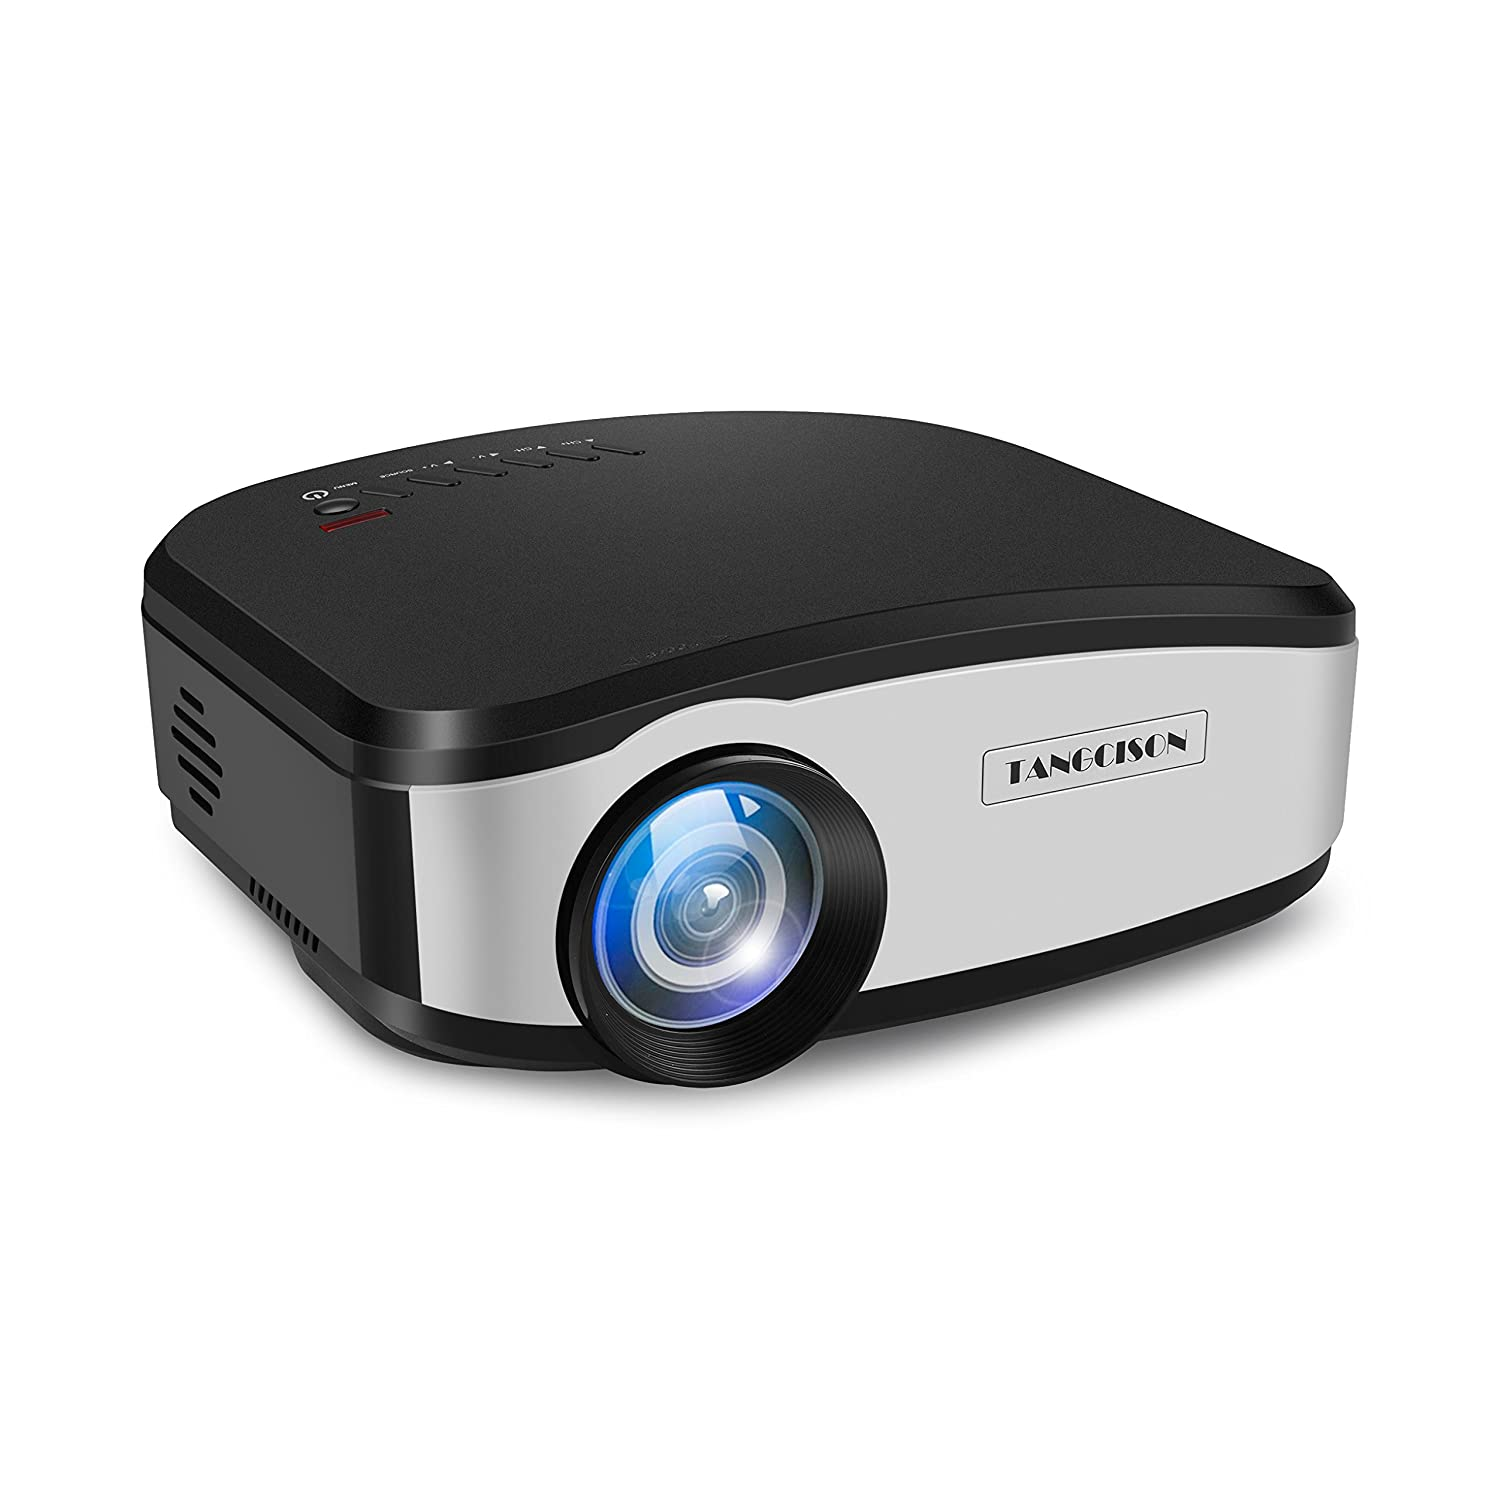 """TANGCISON Video Projector,LCD Projector 1500Luminous 160""""HD 1080P Projector Multimedia Home Theater Movies Projector for Cinema TV Laptop Game with HDMI USB VGA AV Input (Black)"""